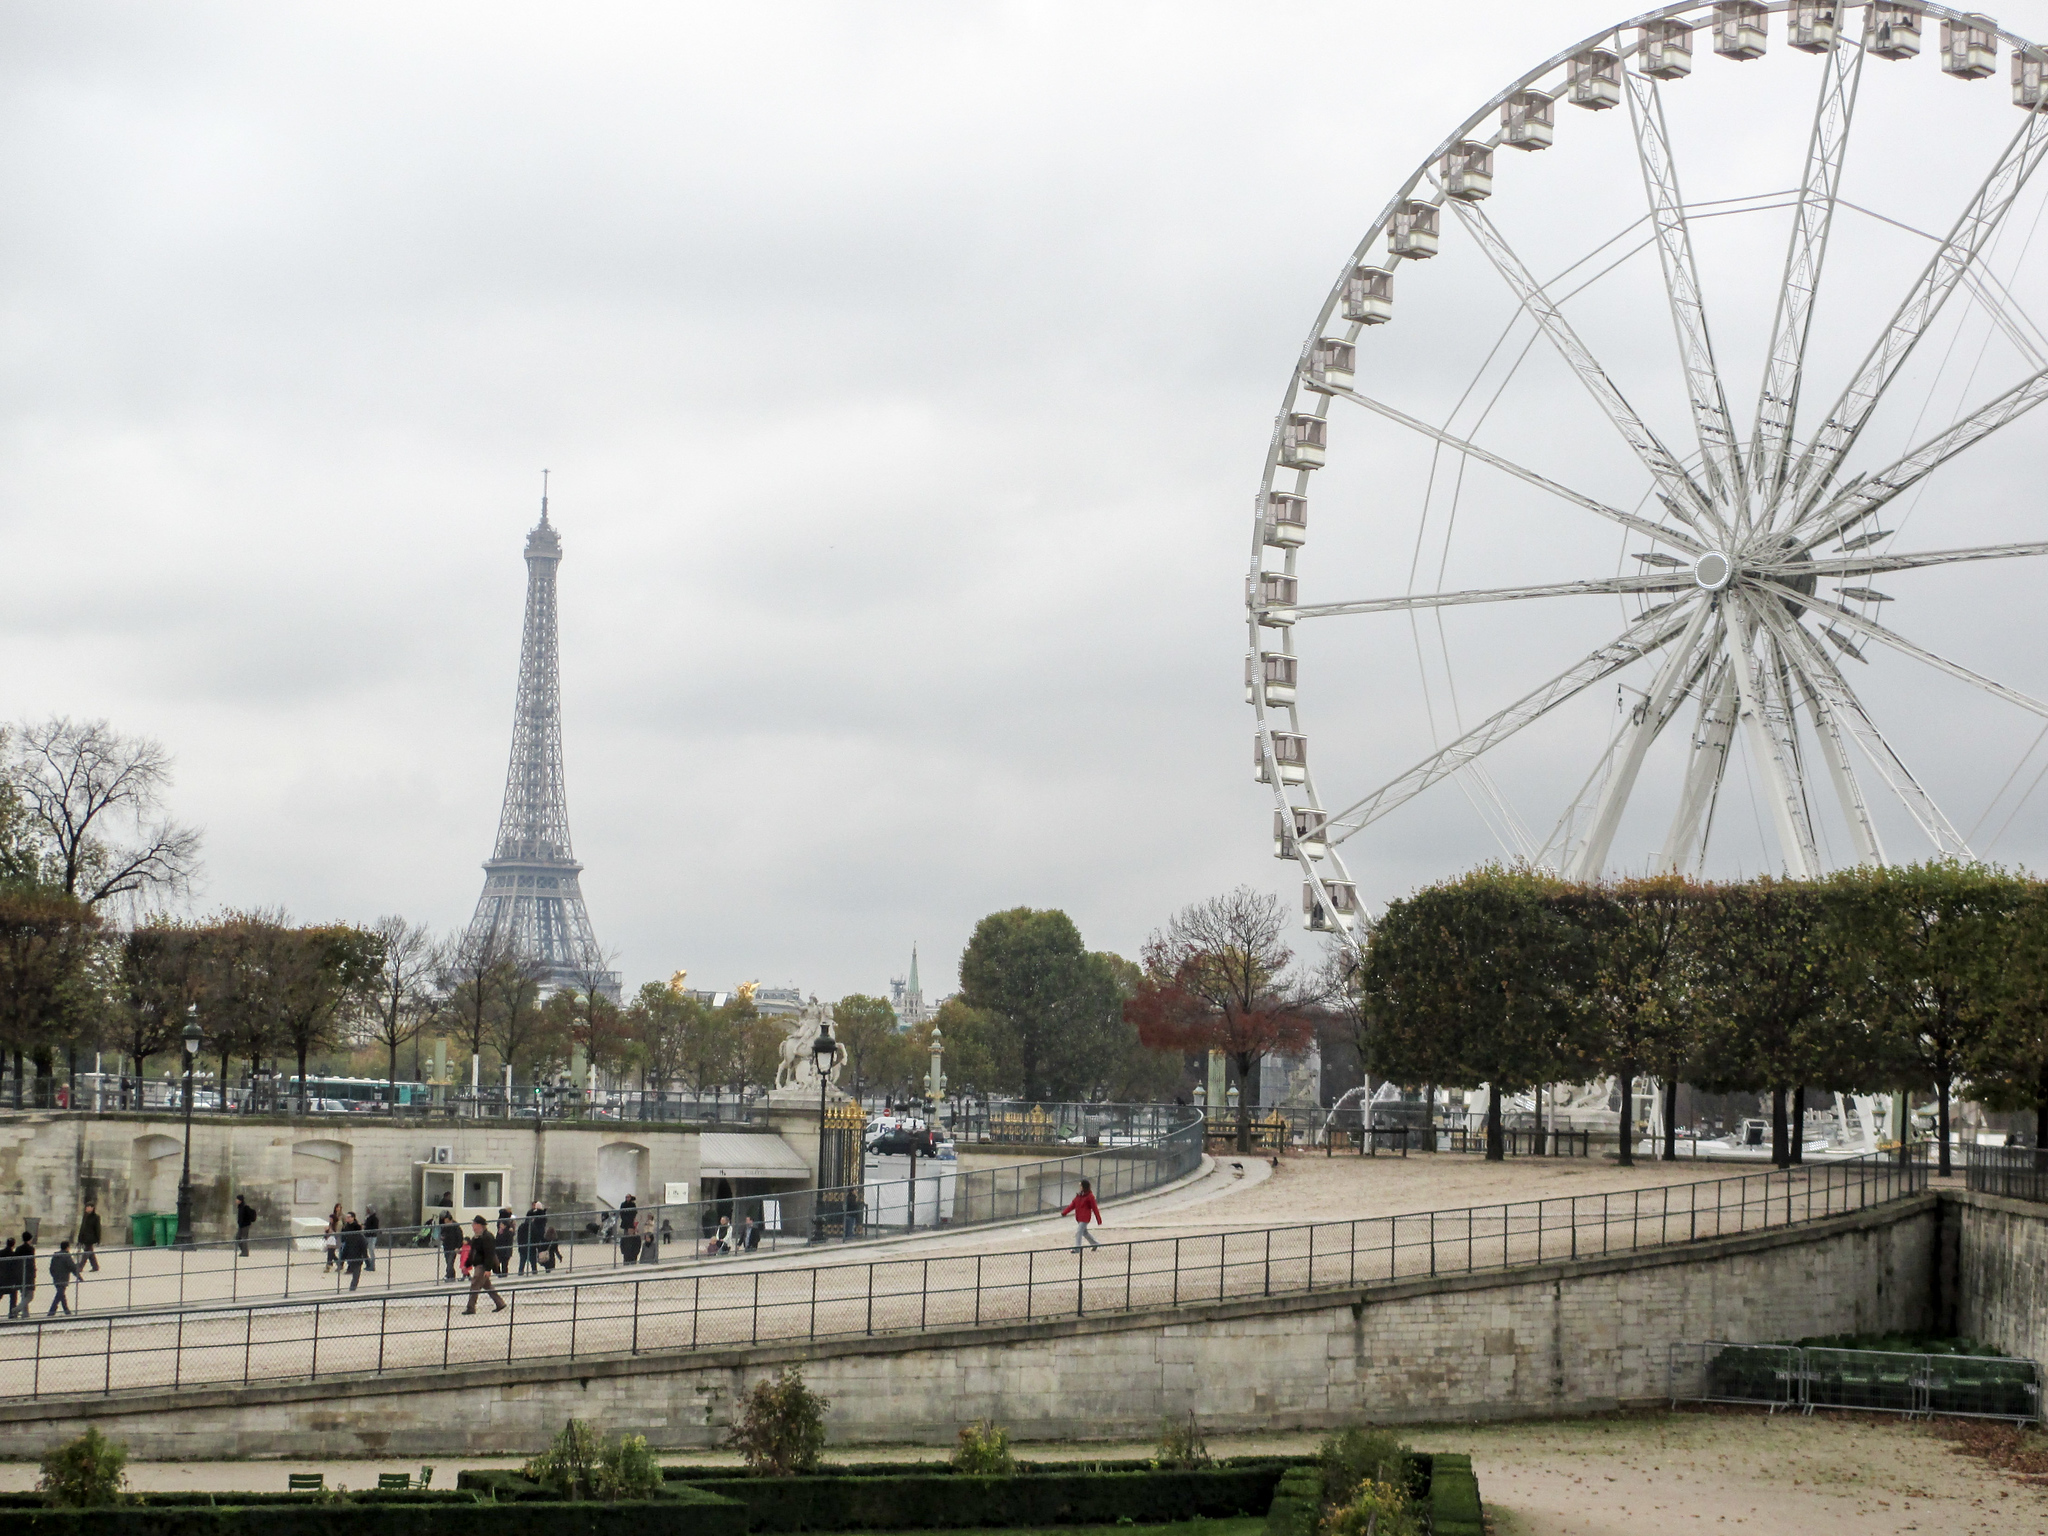 traveling to find yourself in big cities like paris has pros and cons